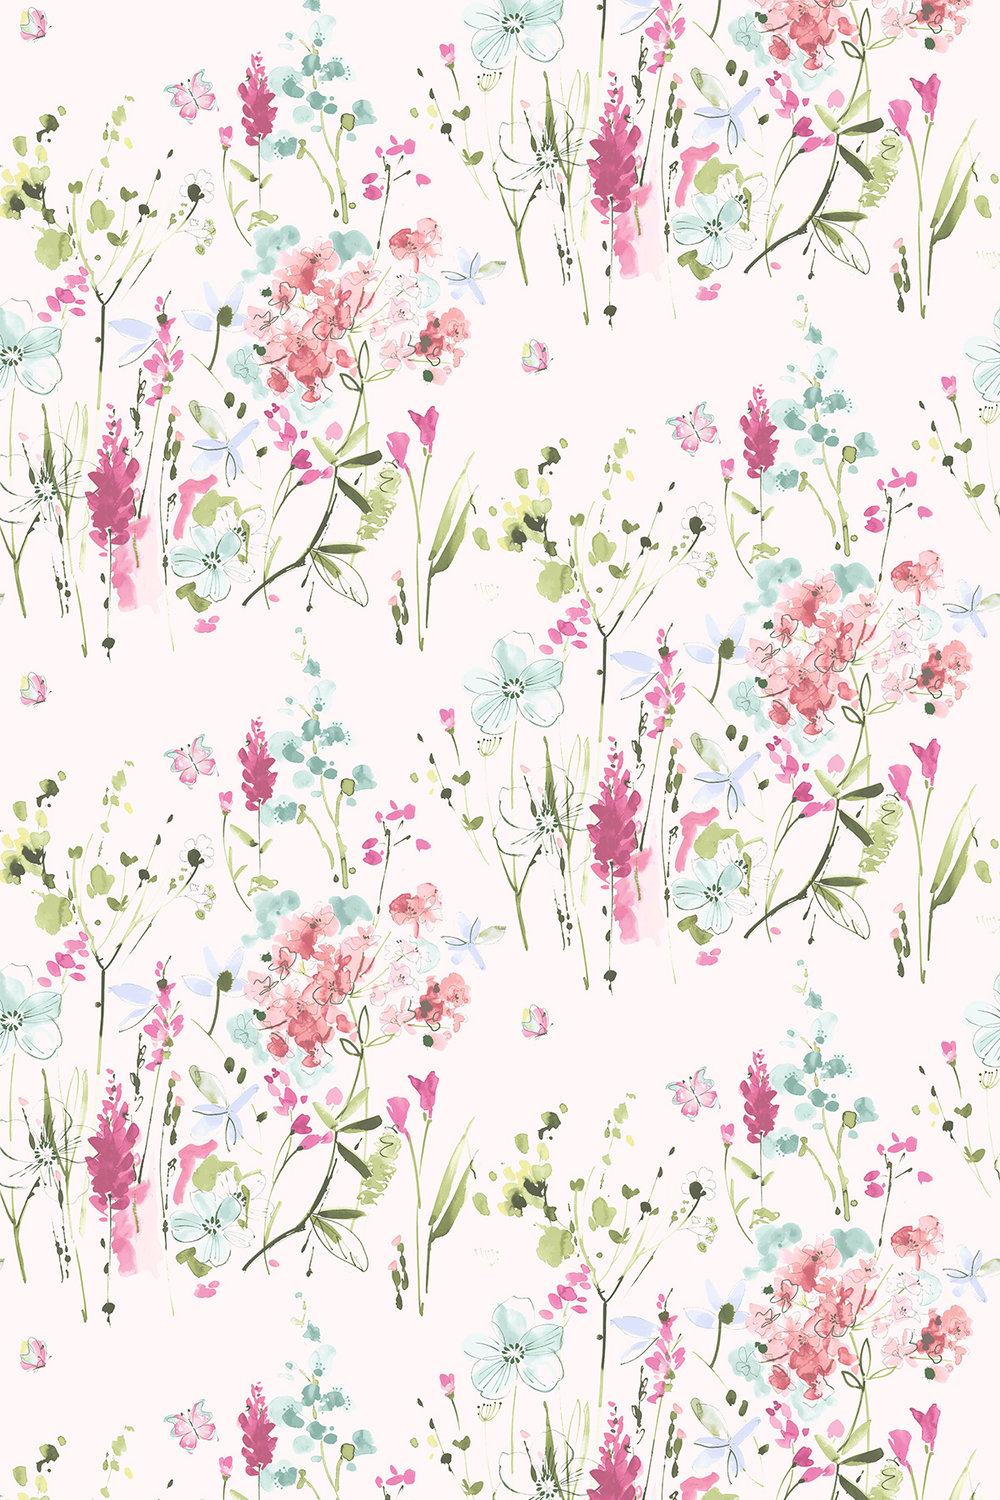 Blendworth Meadow Flowers Pink/ Green Fabric - Product code: MEADOW FLOWERS 1